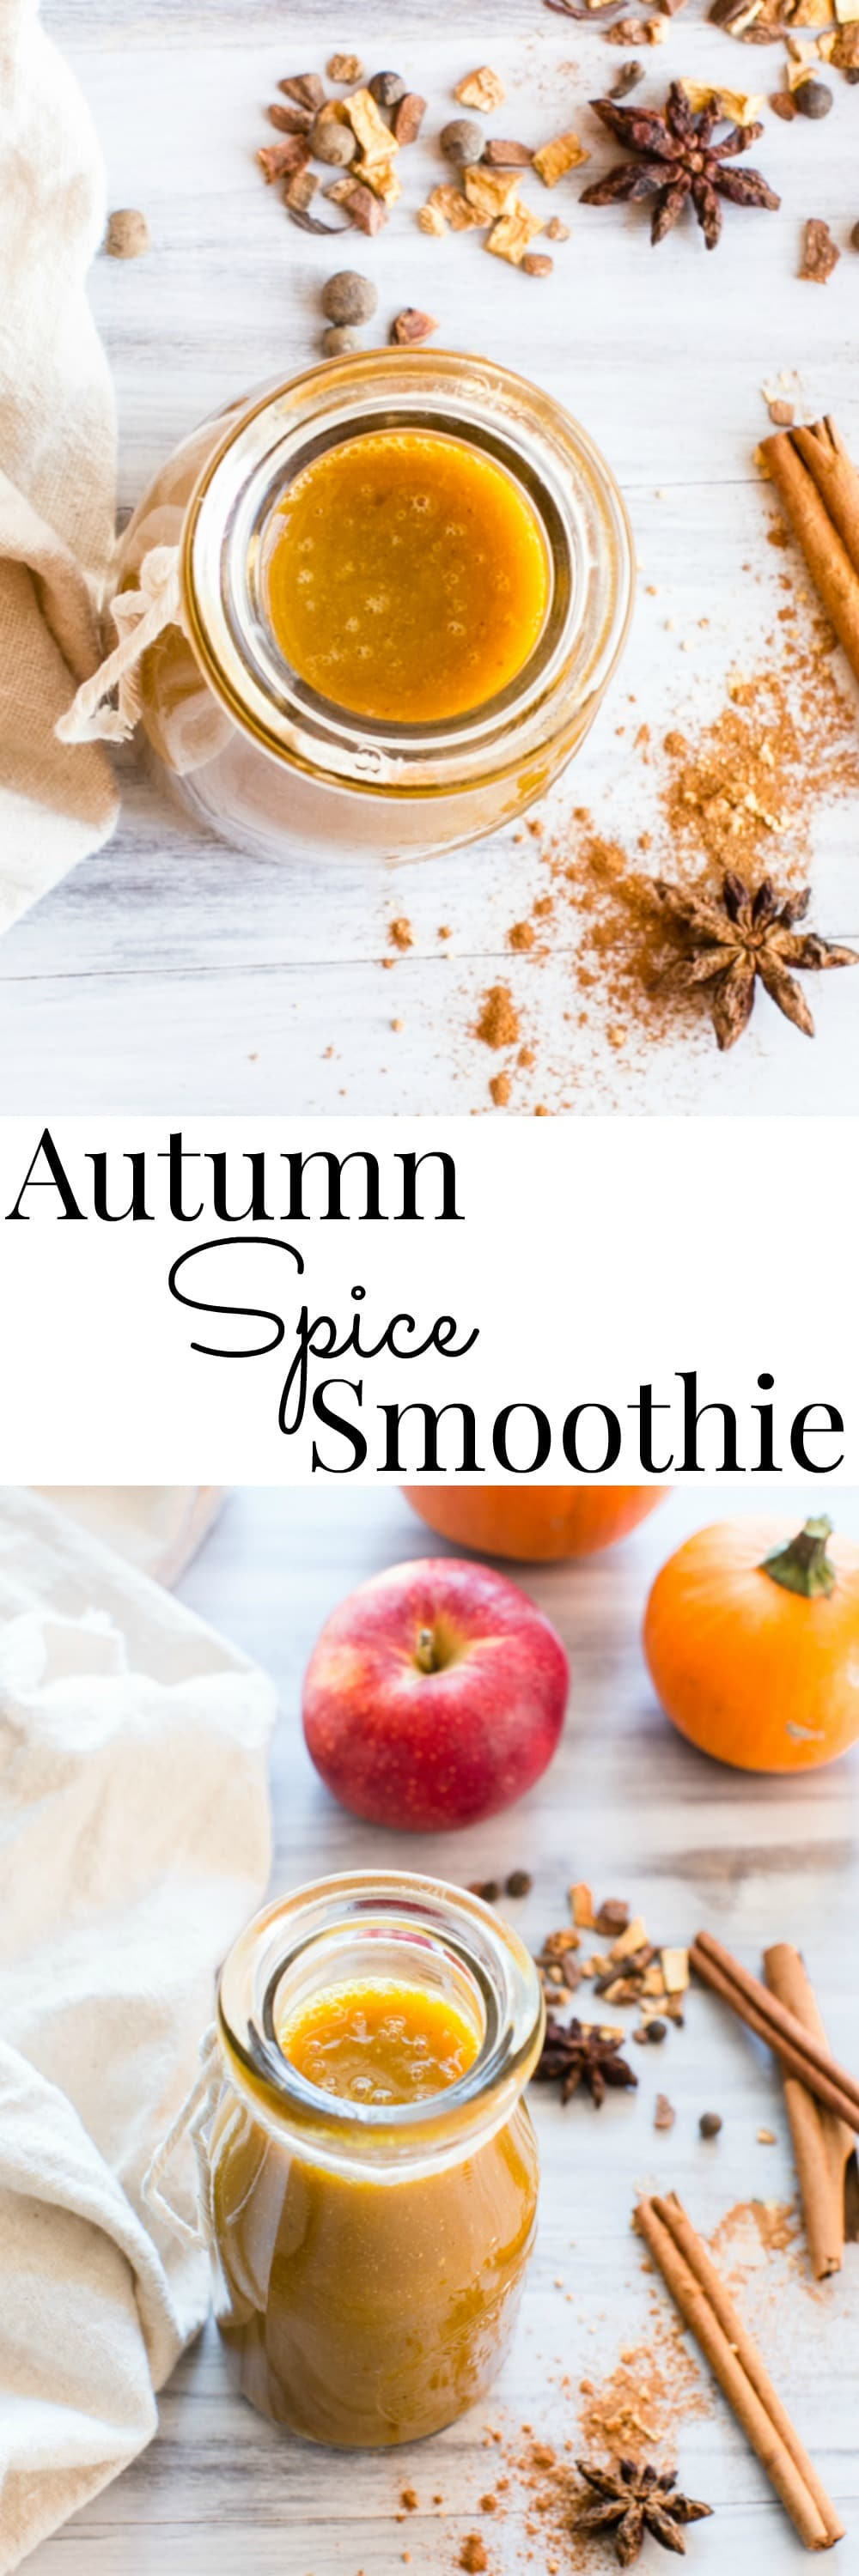 Apple cider and Rooibos tea pairs with pumpkin and spices, apple and banana to create a warm or chilled Fall smoothie   Autumn Spice Smoothie   Vanilla And Bean